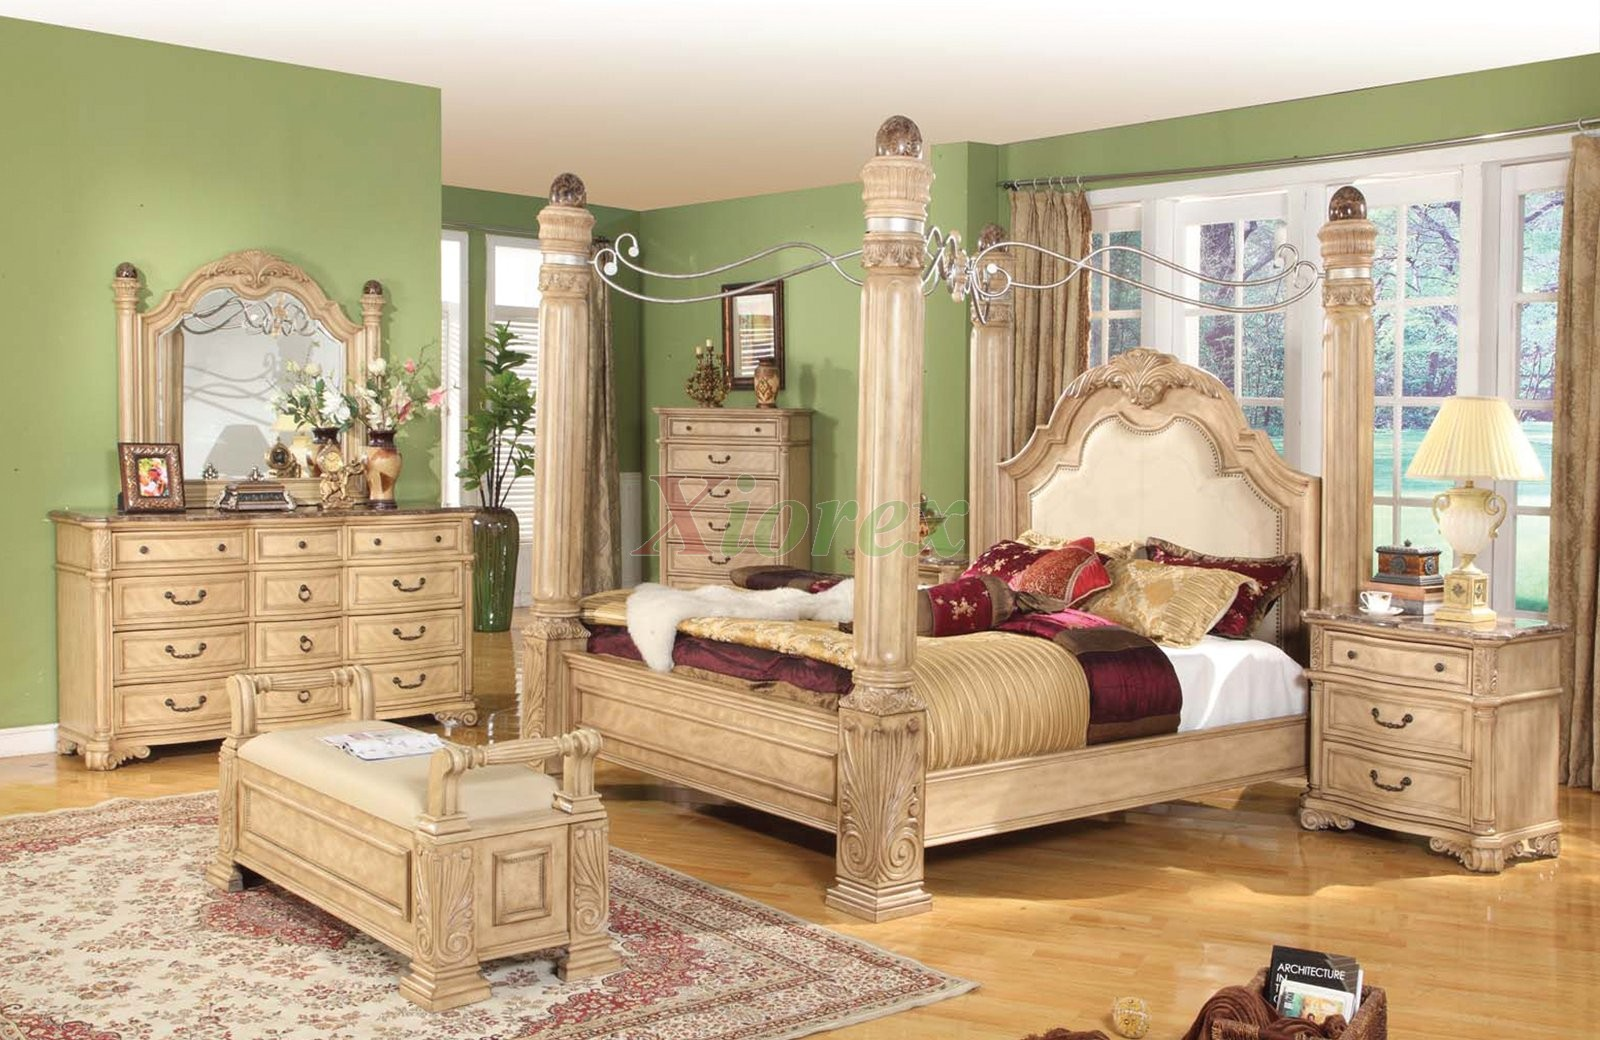 Queen And King Poster Bedroom Set With Metal Canopy And Leather Headboard.